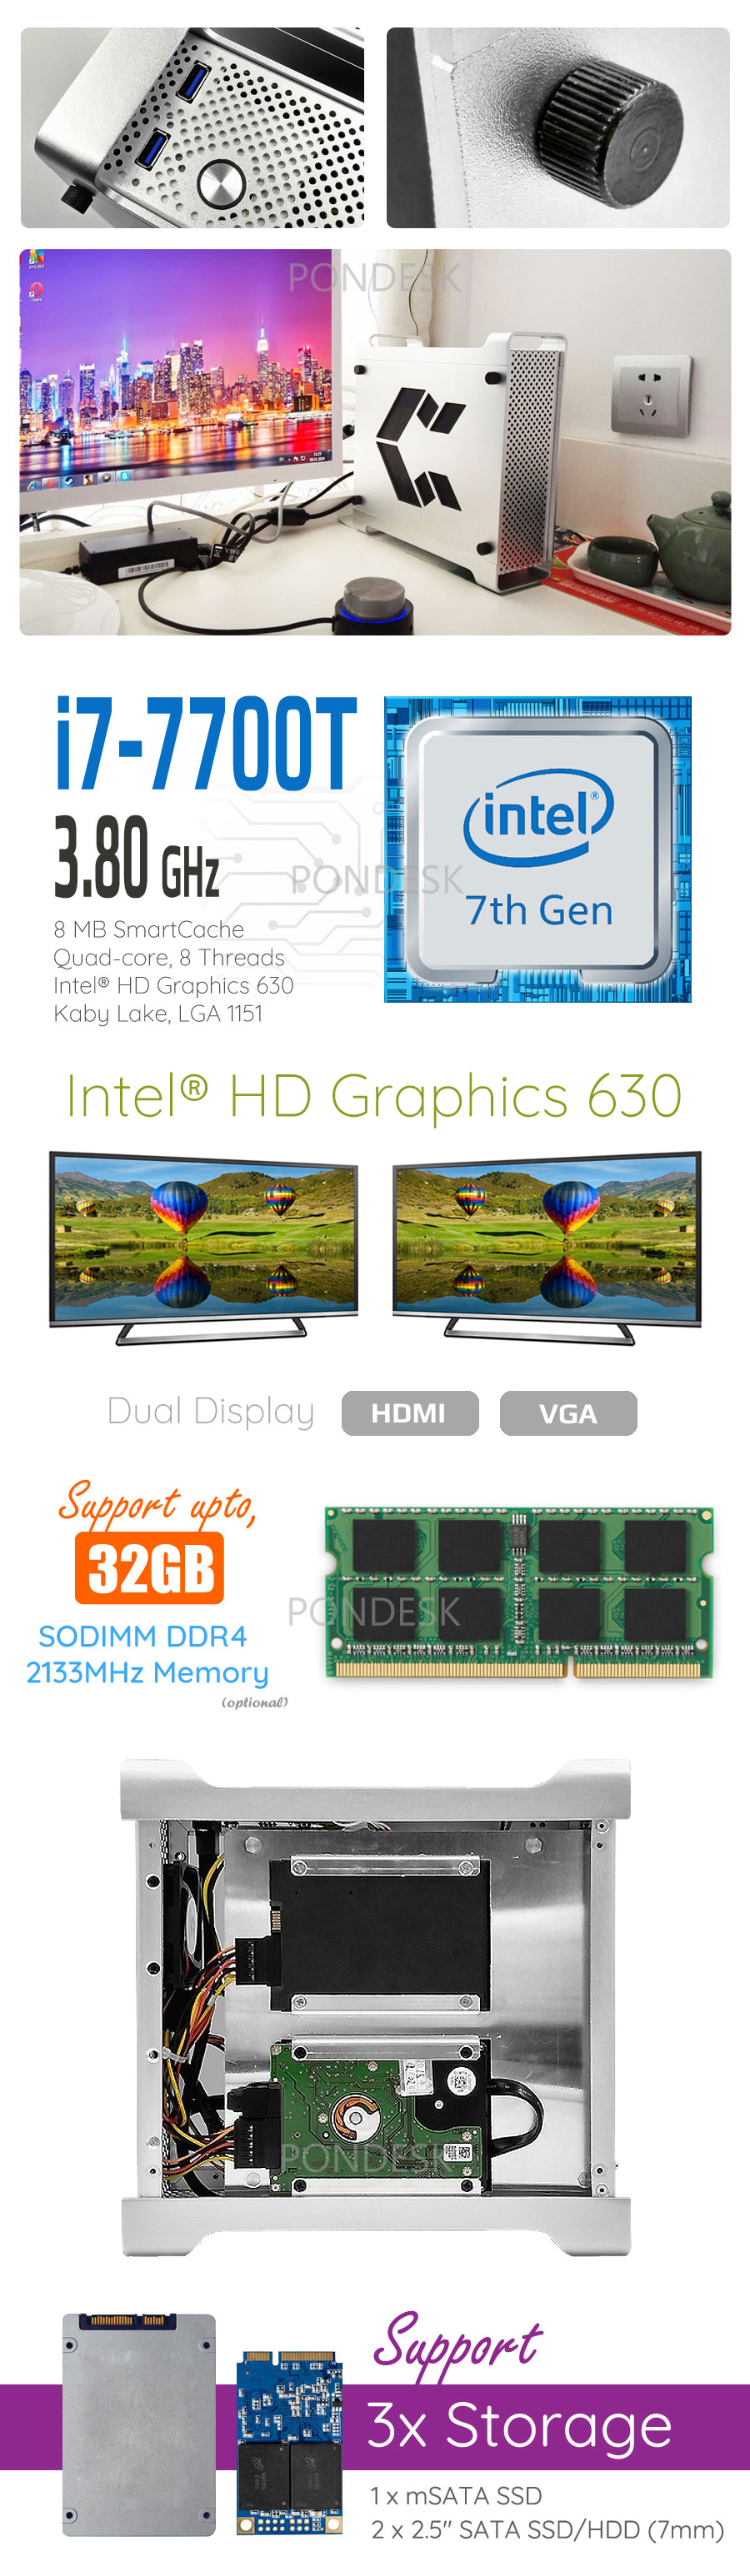 7th Gen Intel® i7-7700T Kaby Lake 3.8GHz HD 630 Mini Desktop - DTHO-007 | Image